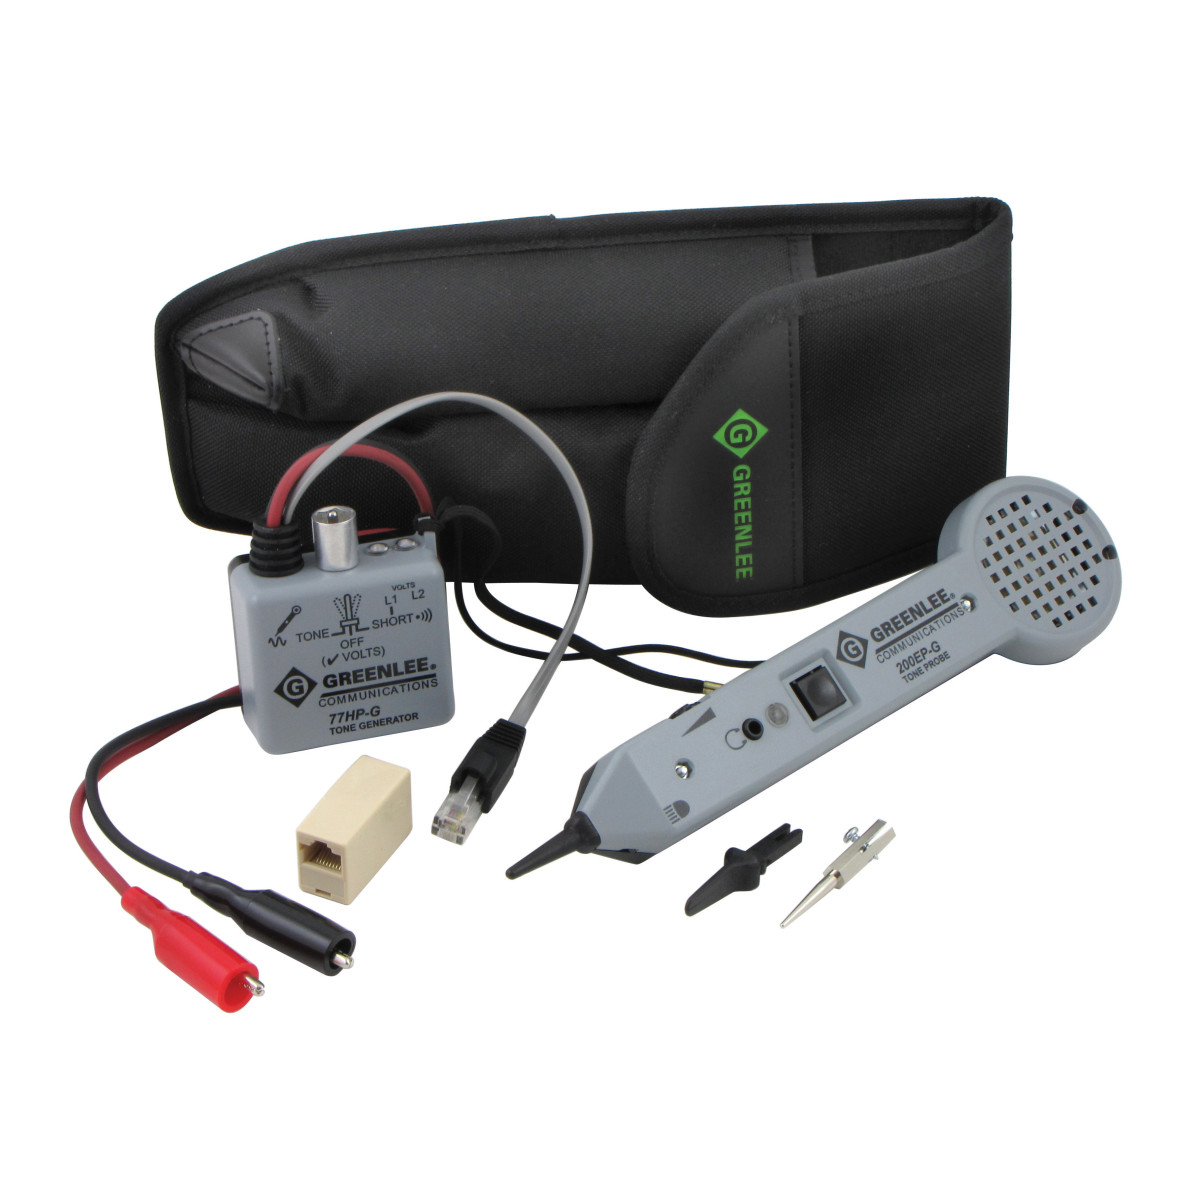 GRE 701K-G TONE & PROBE KIT formerly: 701K